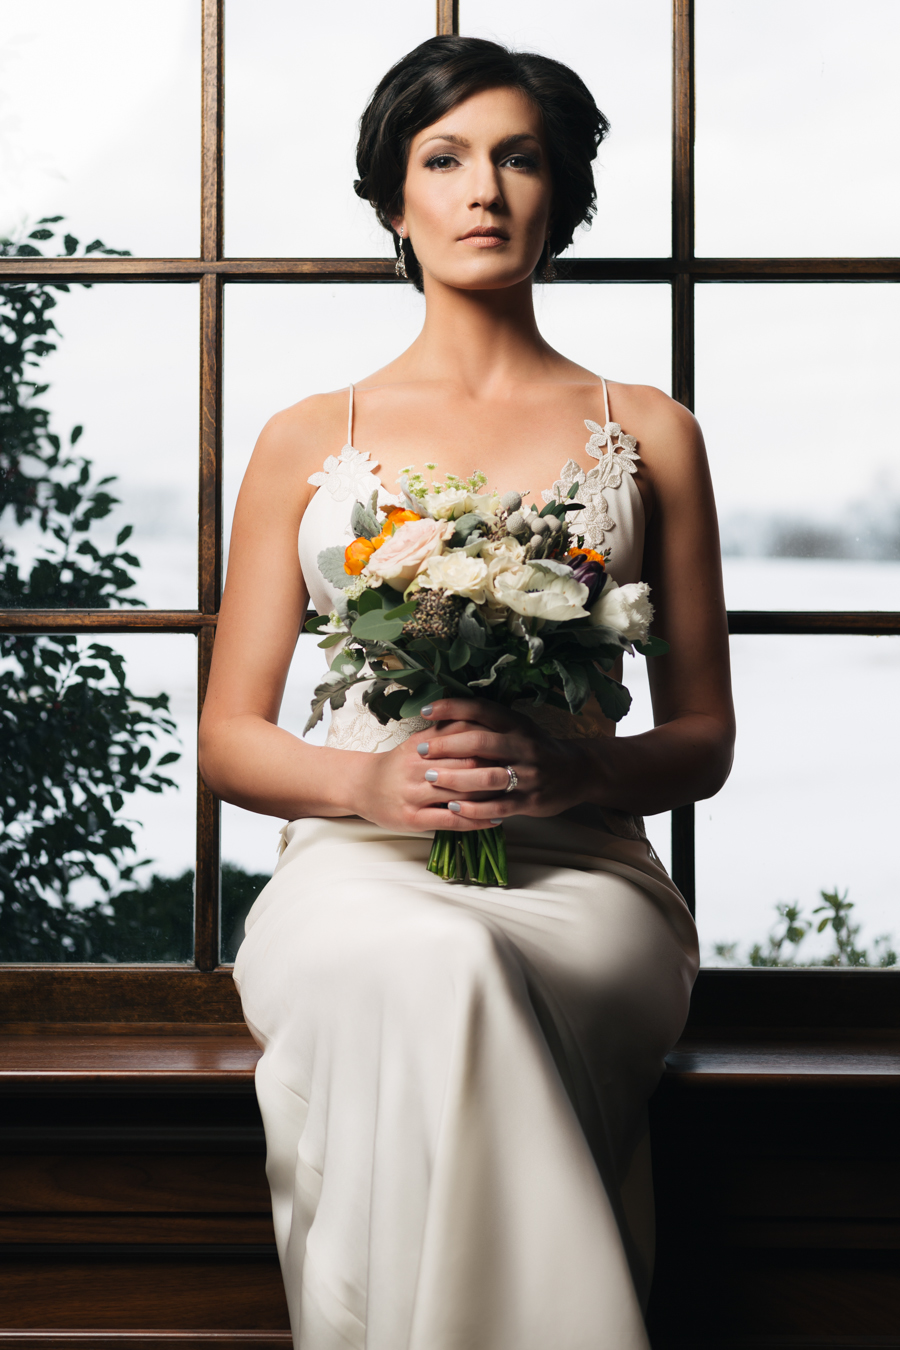 Shades-of-grey-inspired-Connecticut-wedding-fashion-style-black-tie-photographer-BSC-Amy-Champagne-Events-Portraits_0012.jpg